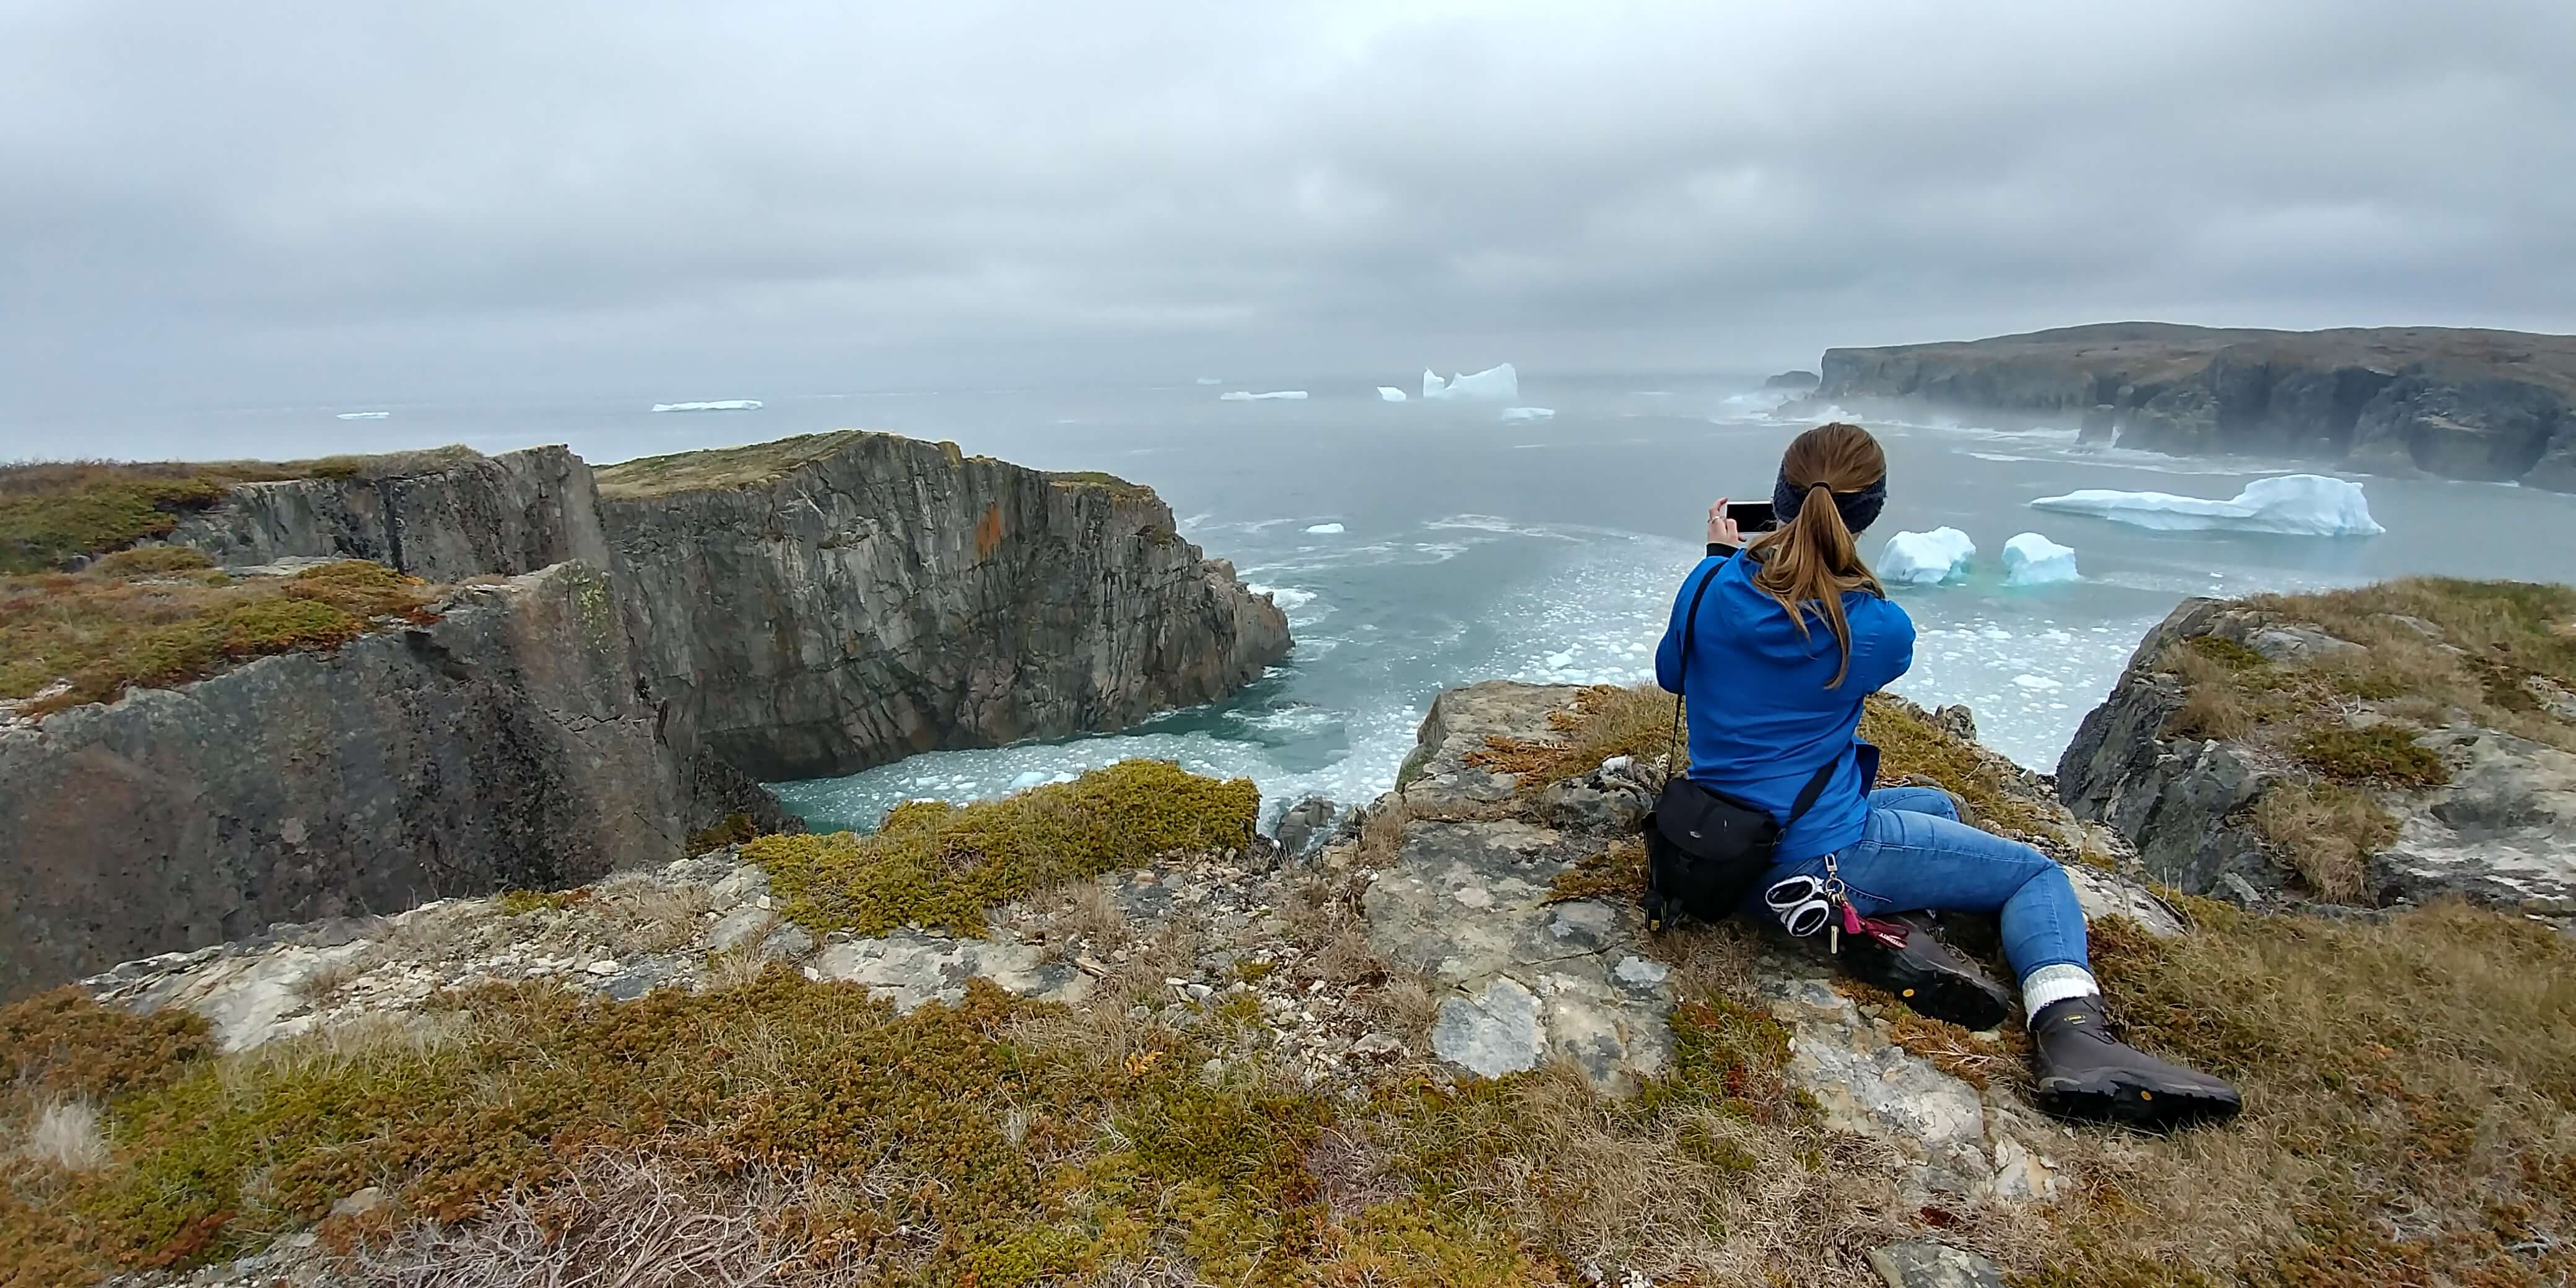 a woman takes a photo of cliffs and icebergs from the Klondike Trail